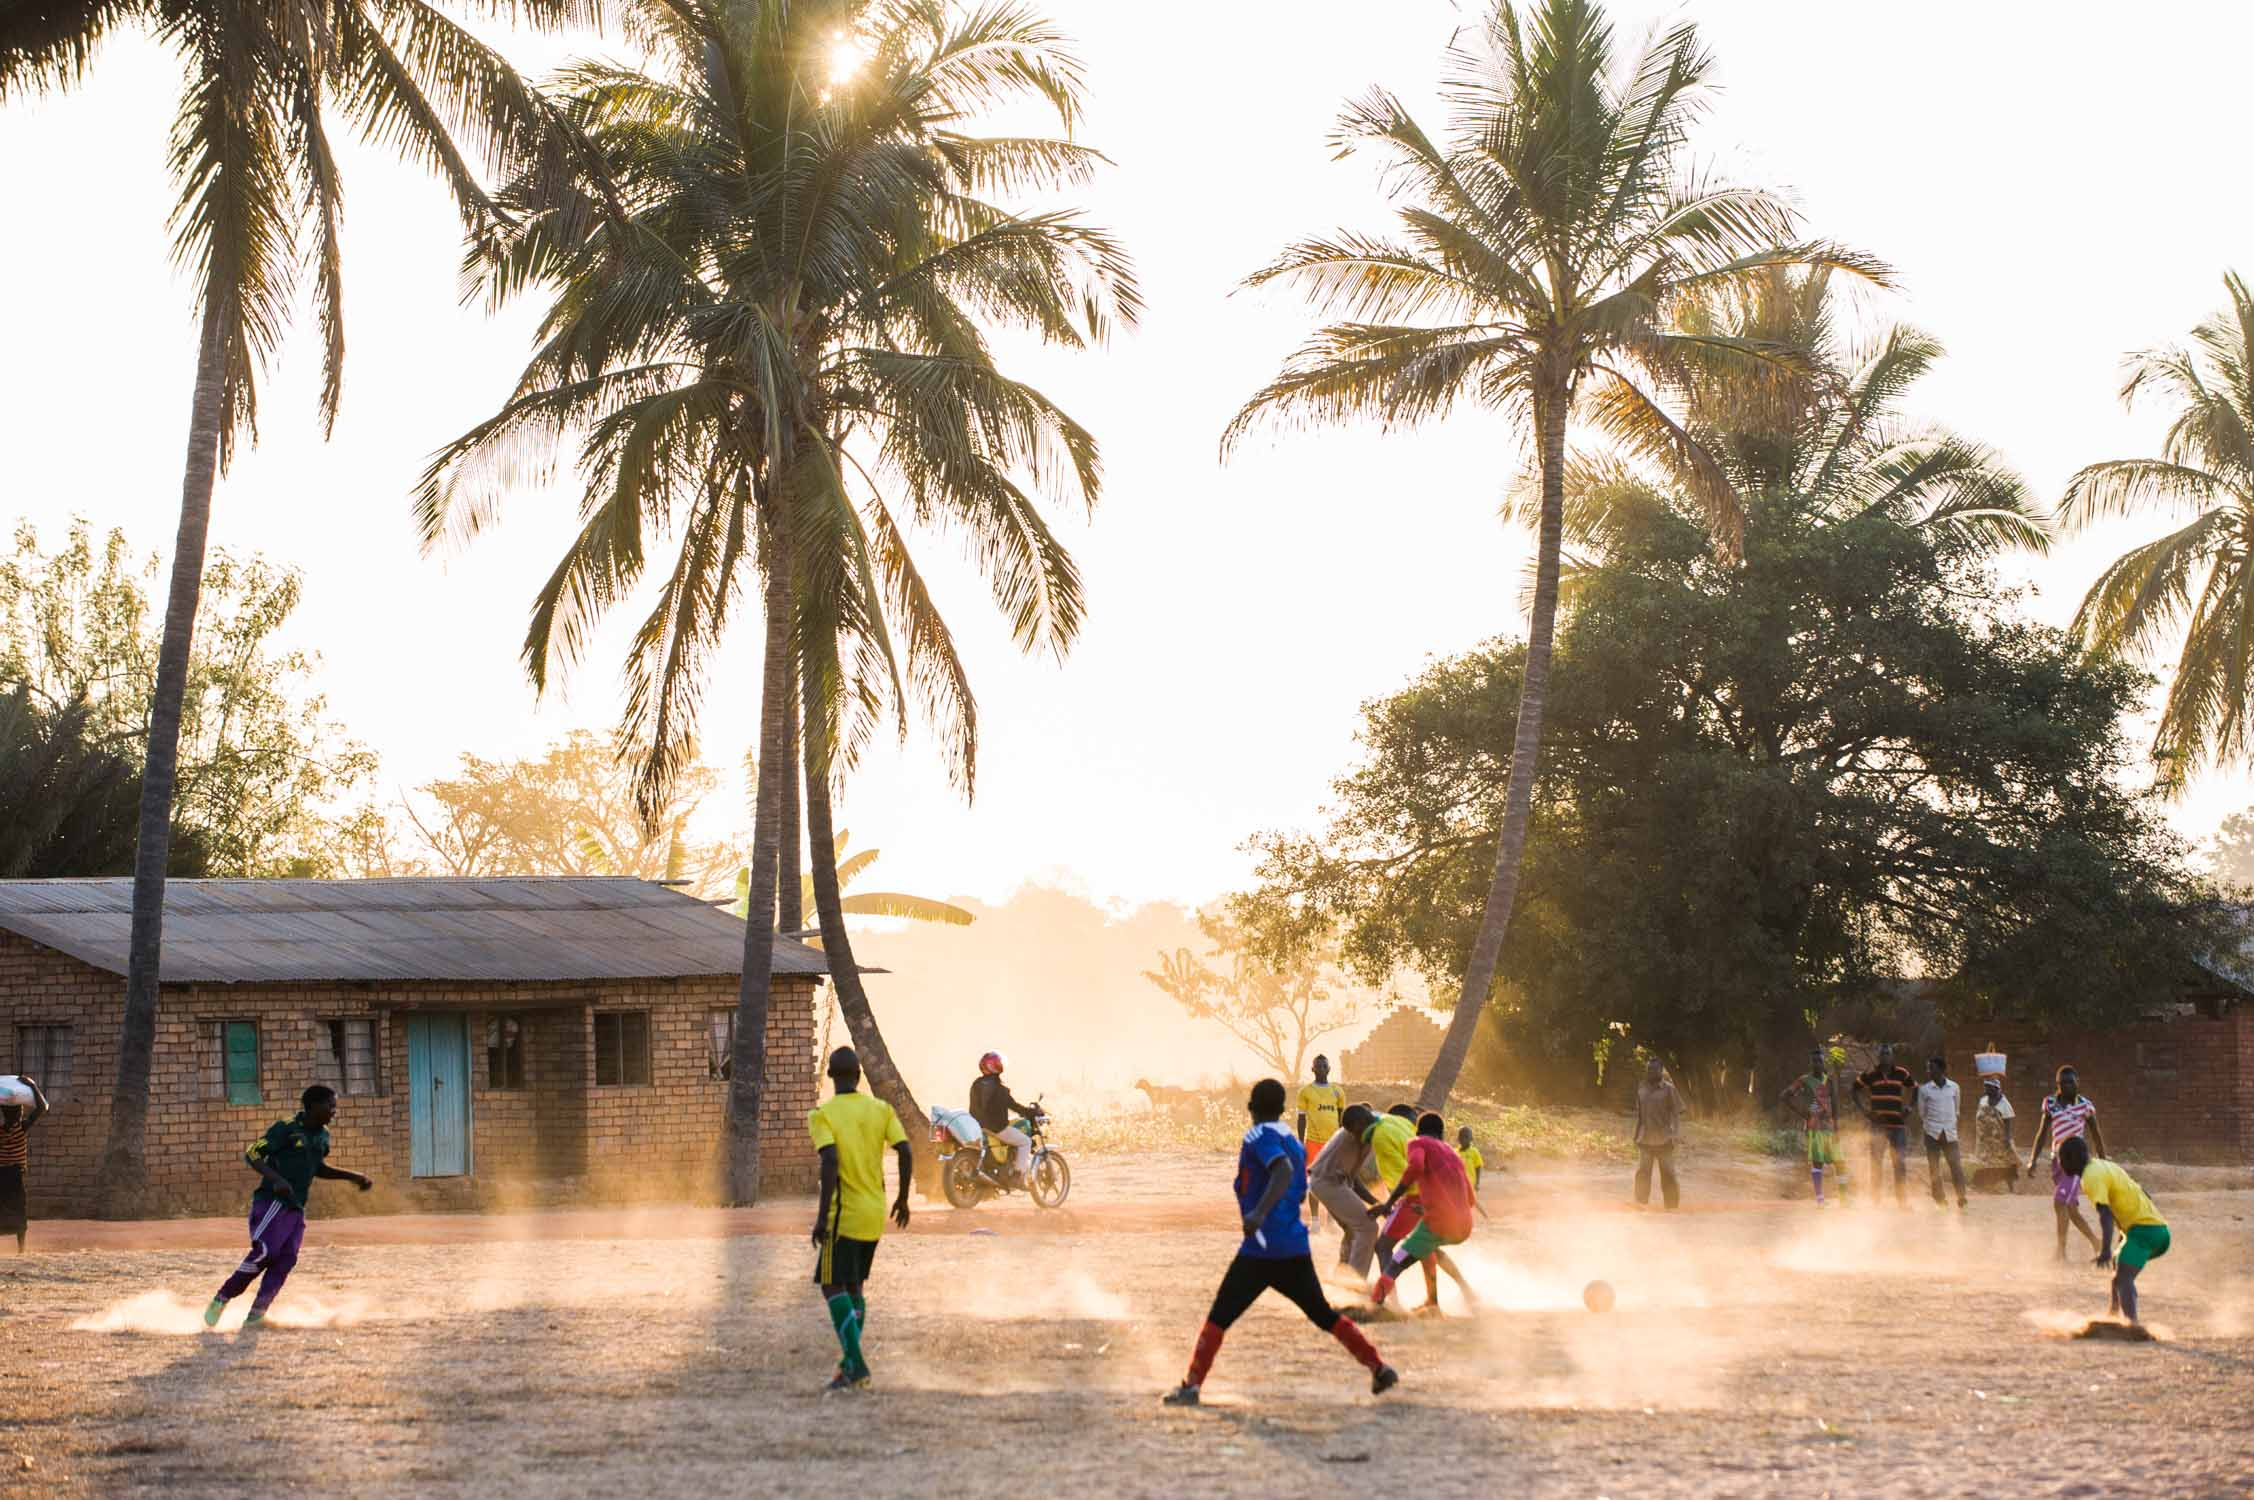 Sunset soccer match in Likuyu village.